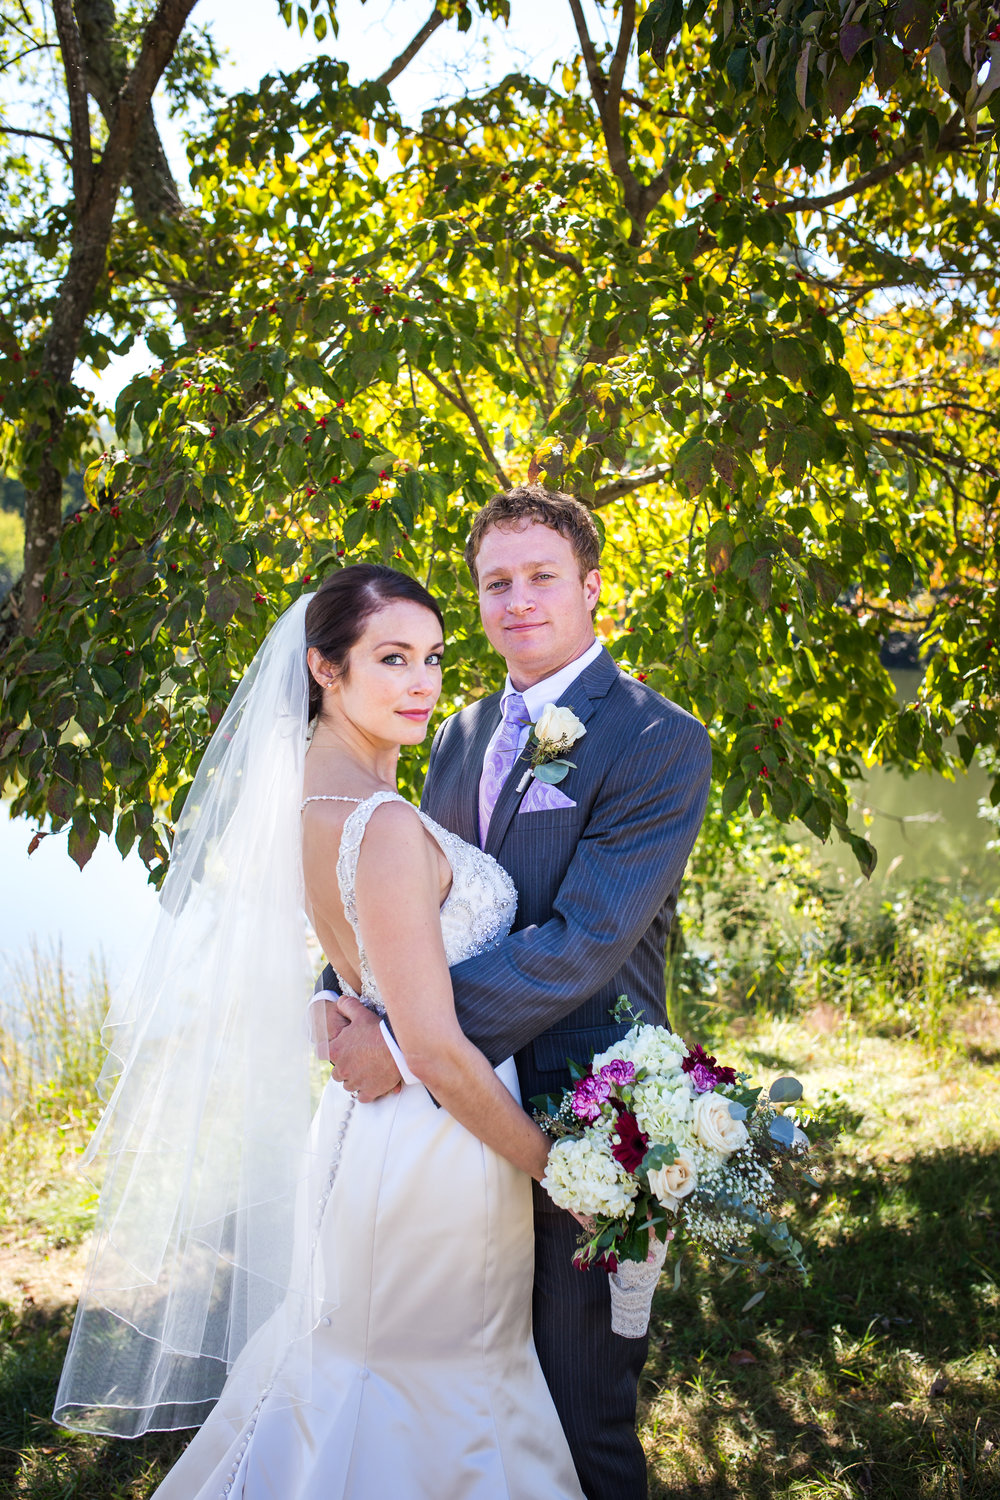 Scott & Erin Wedding 10-1-16-6401.JPG